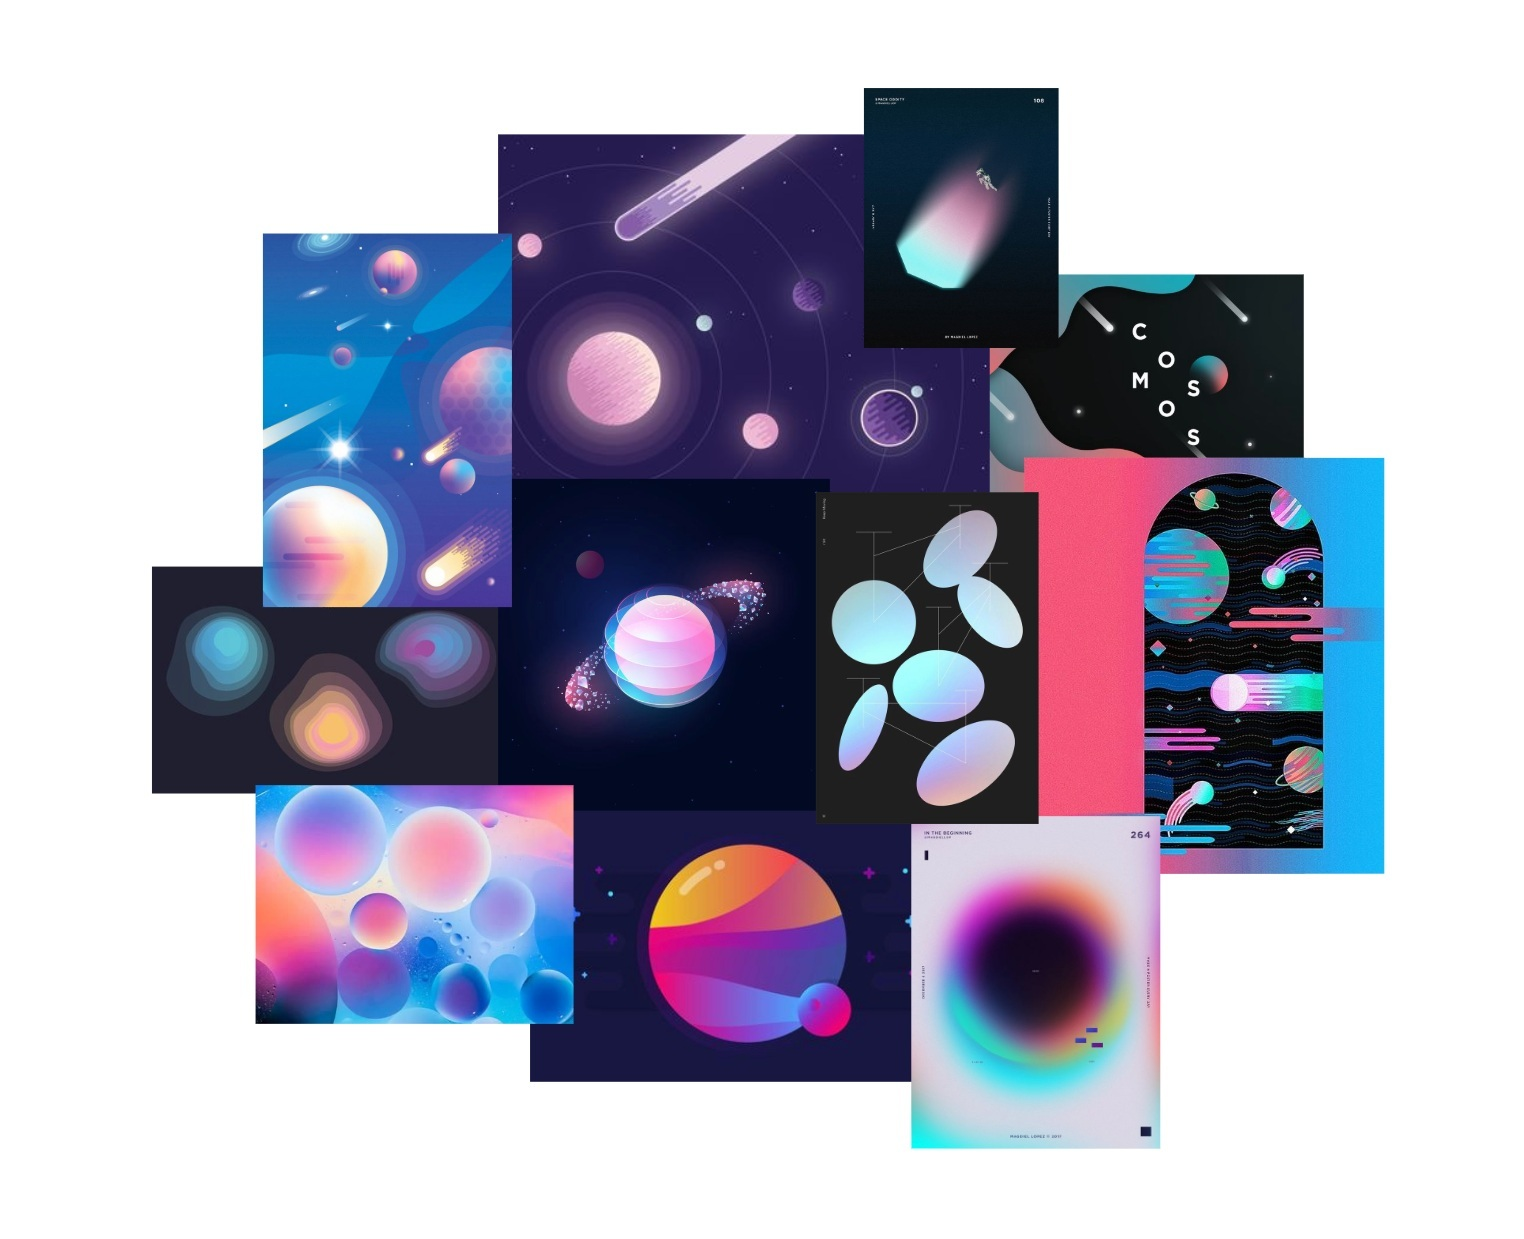 Gradient and multicolor space precedent images for overall toy theme.